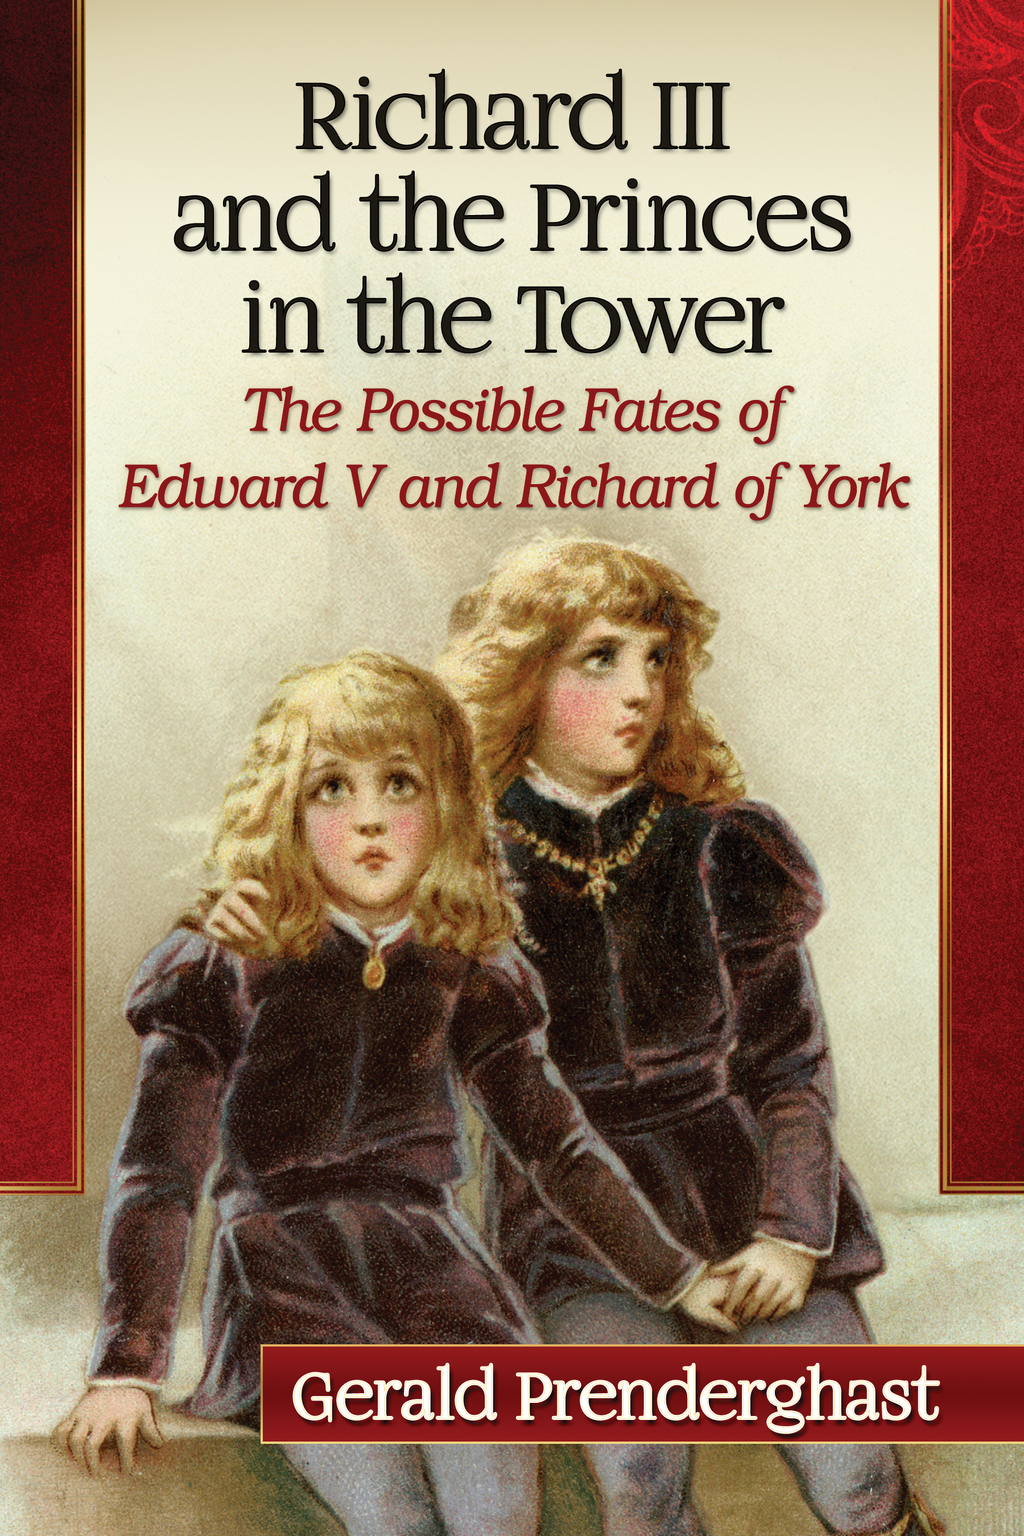 Richard III and the Princes in the Tower: The Possible Fates of Edward V and Richard of York (ebook) eBooks